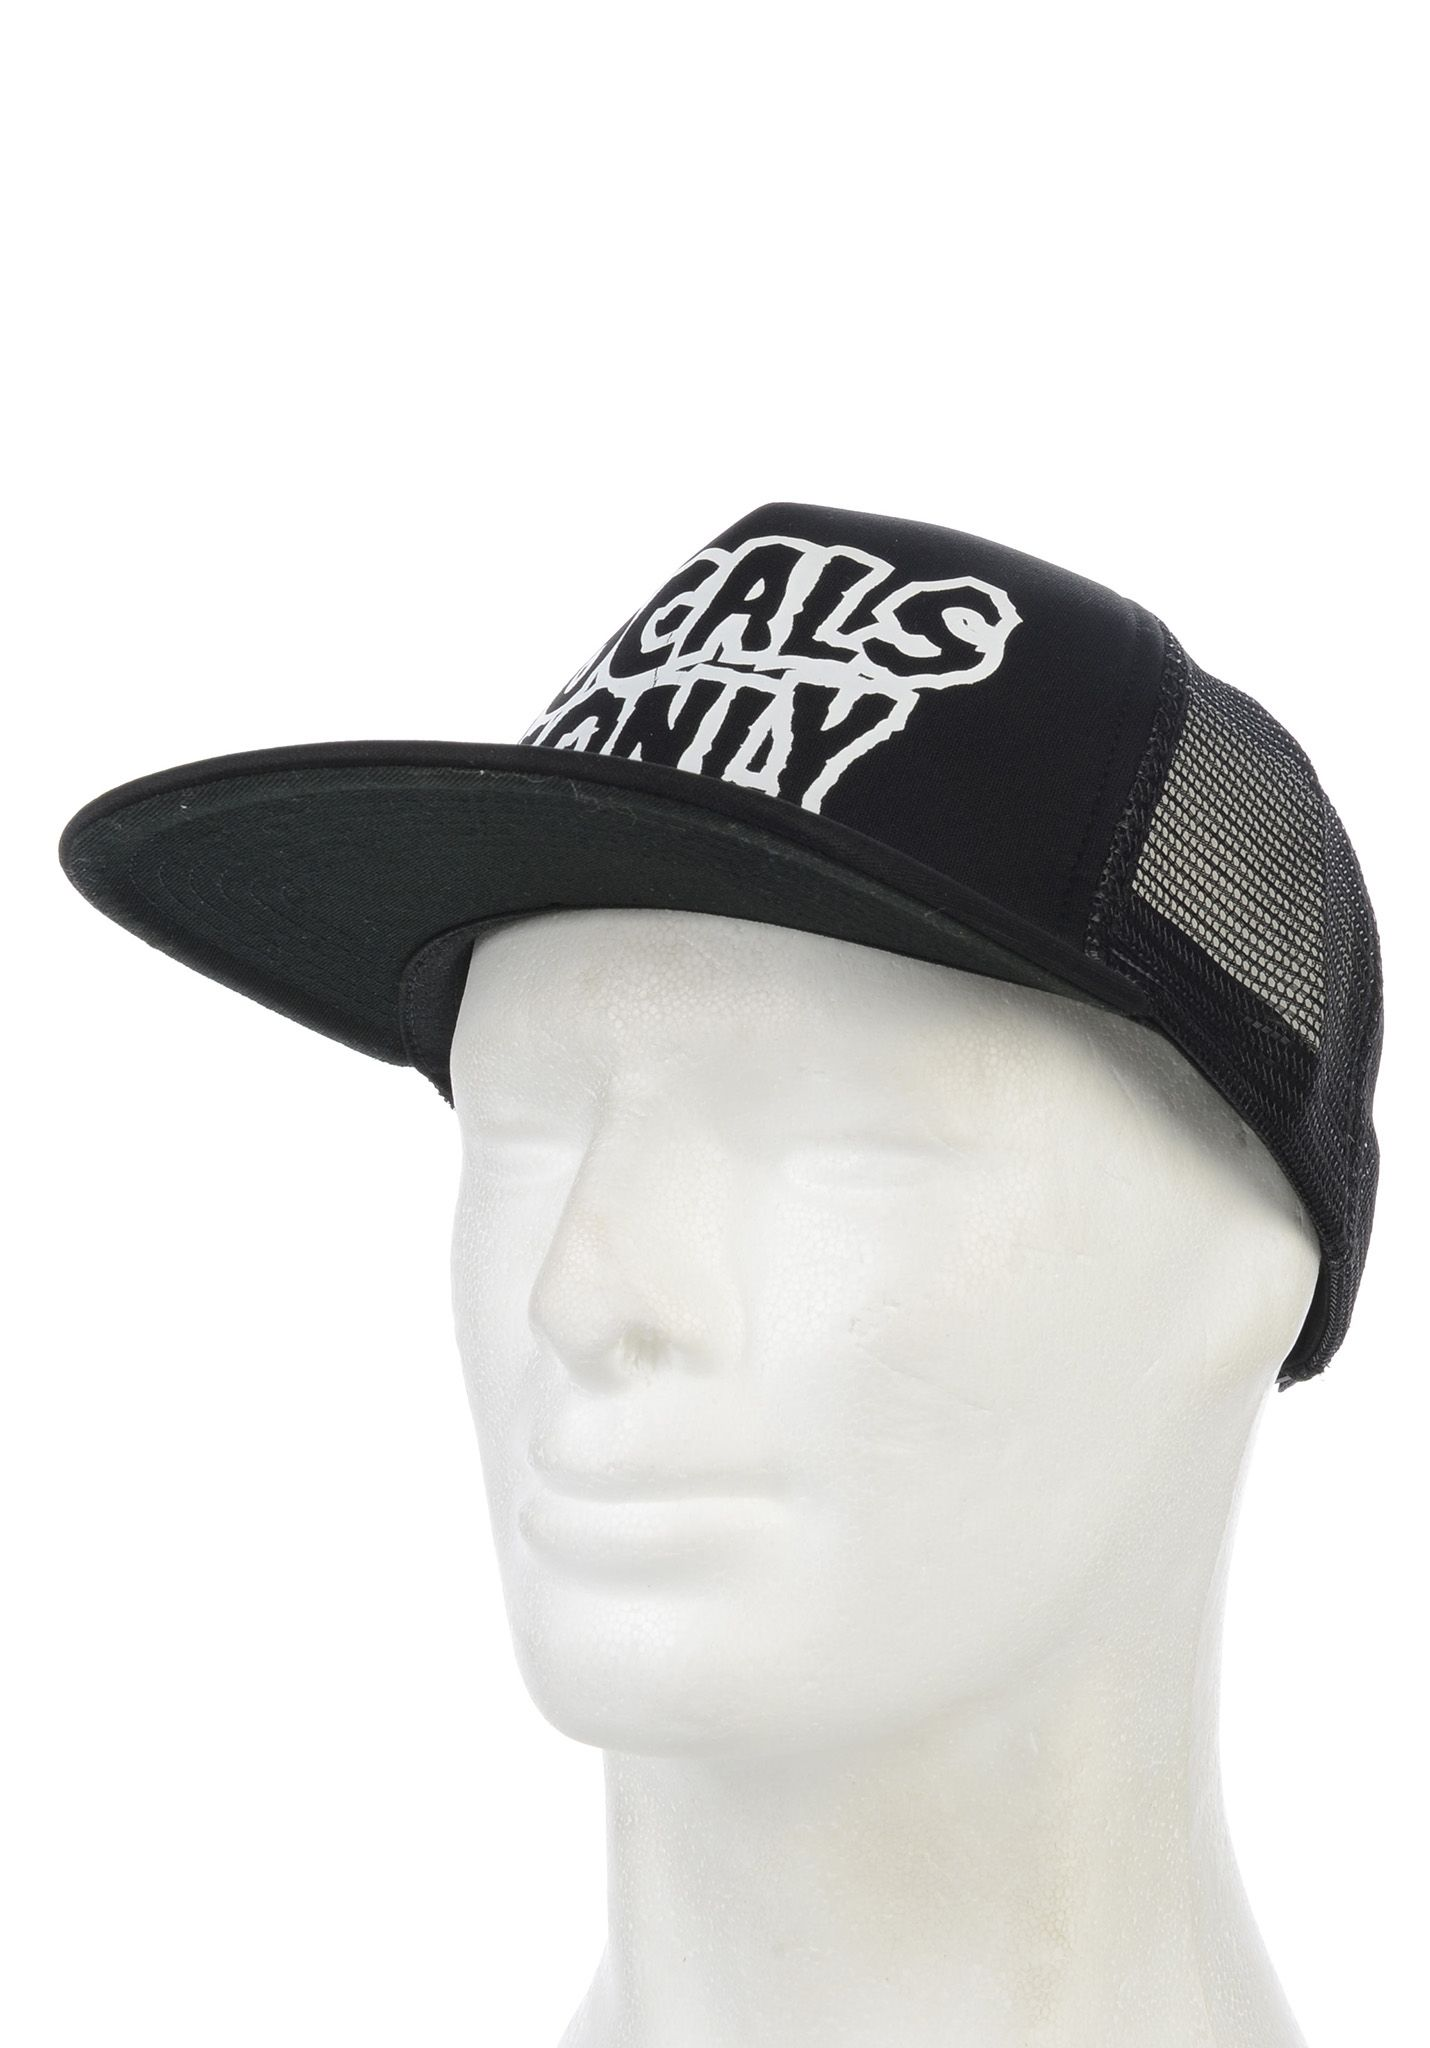 4ffb0beb1c9 NEFF Locals Only - Snapback Cap - Black - Planet Sports